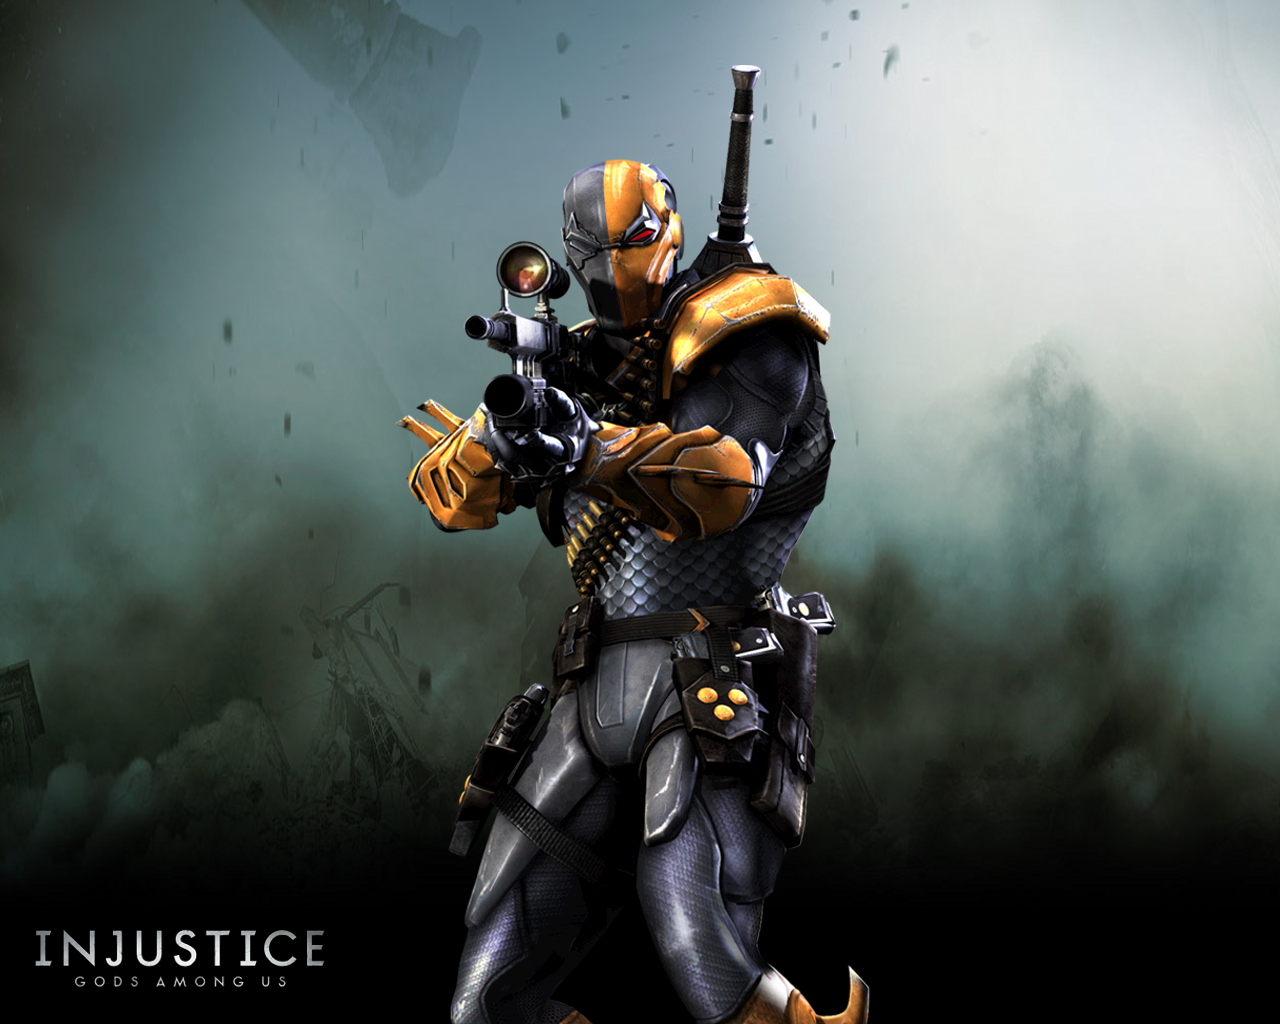 Gallery images and information Deathstroke Wallpaper Hd Injustice 1280x1024